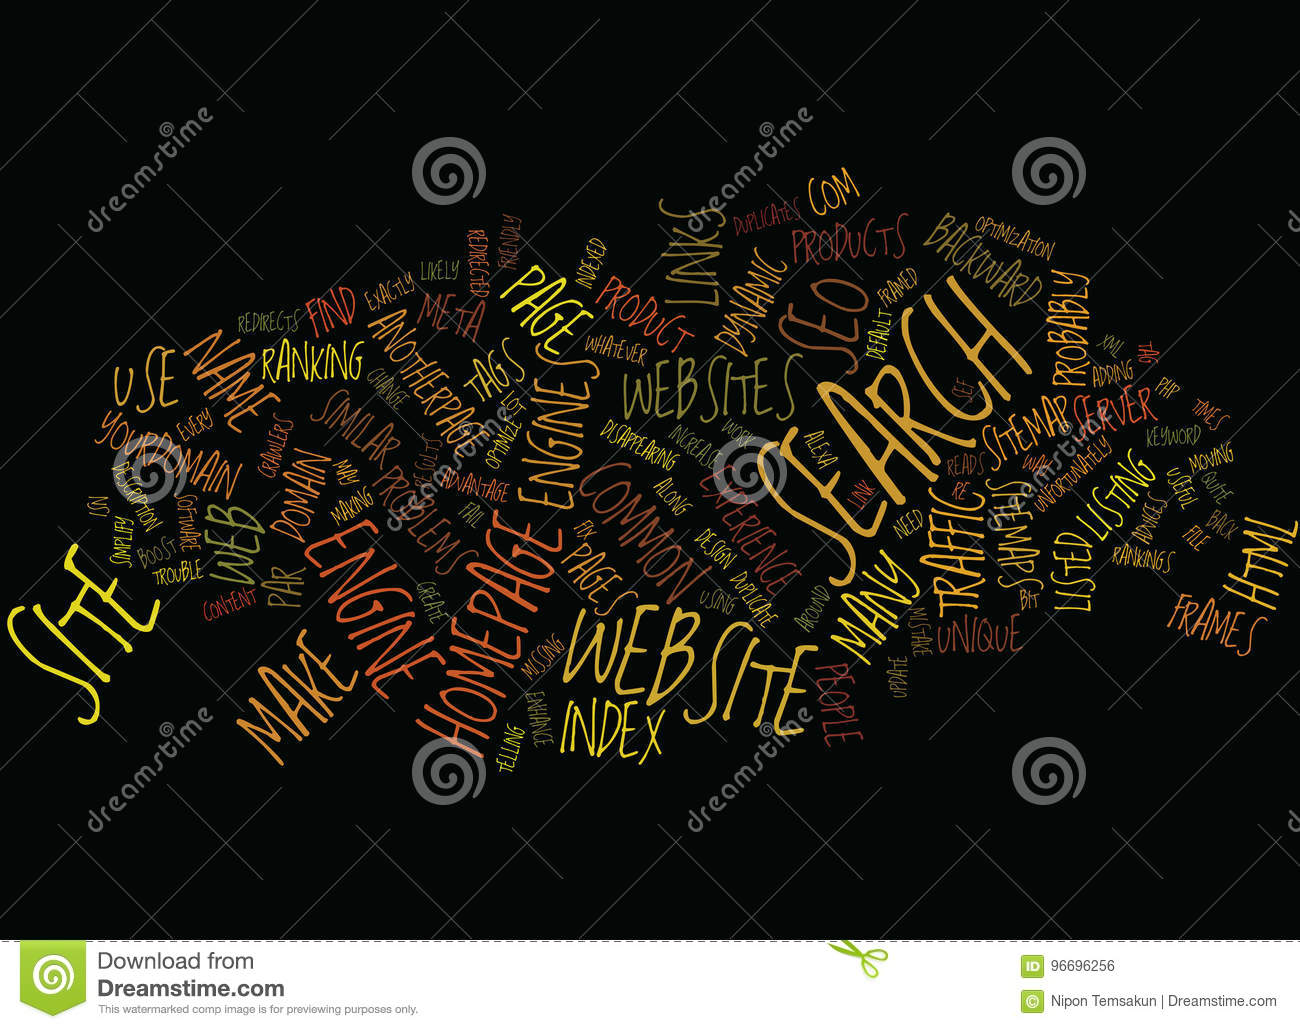 Enhance And Fix You Site For Seo Text Background Word Cloud Concept